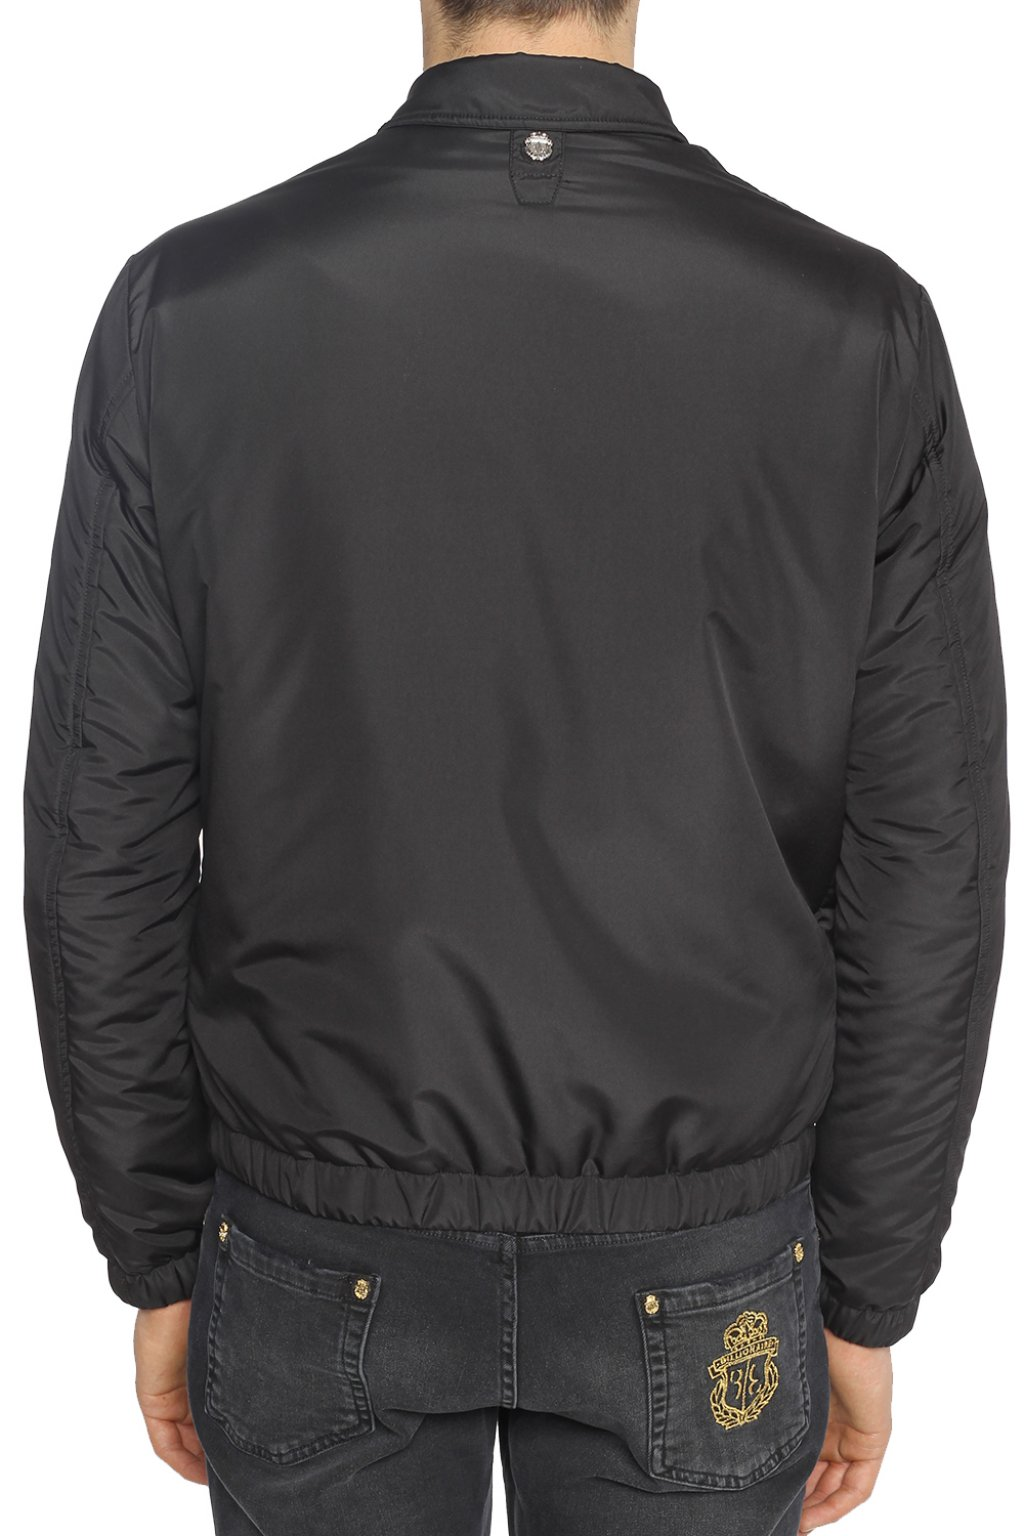 Billionaire 'Faust' jacket